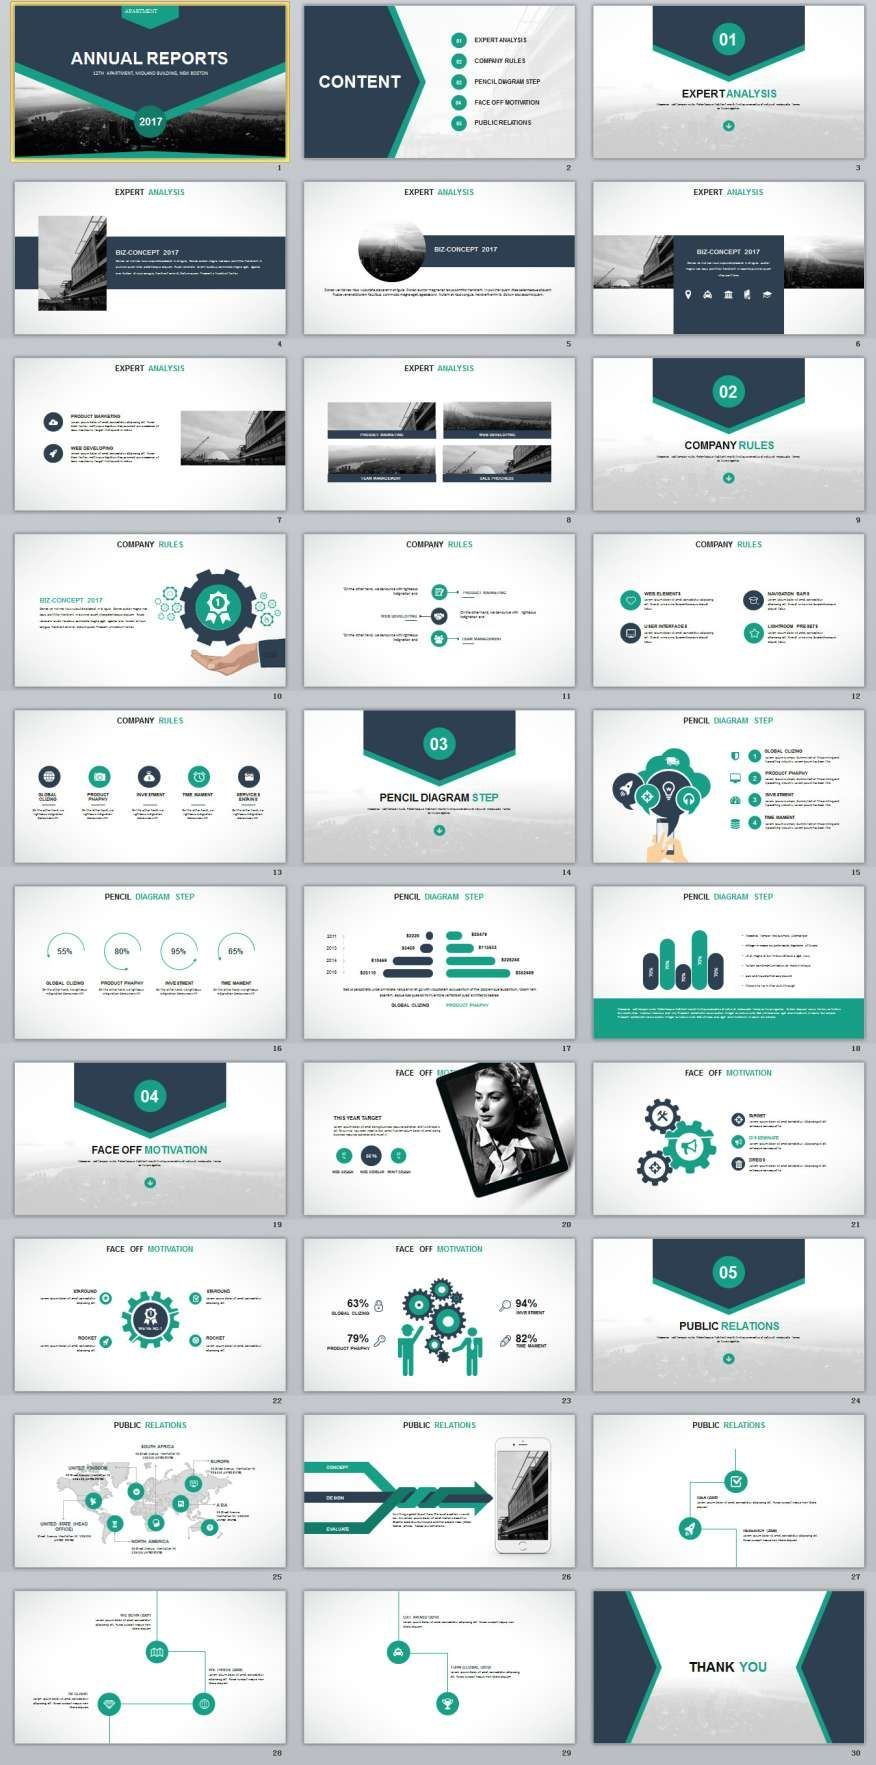 30 slide blue annual report powerpoint templates 0 pinterest